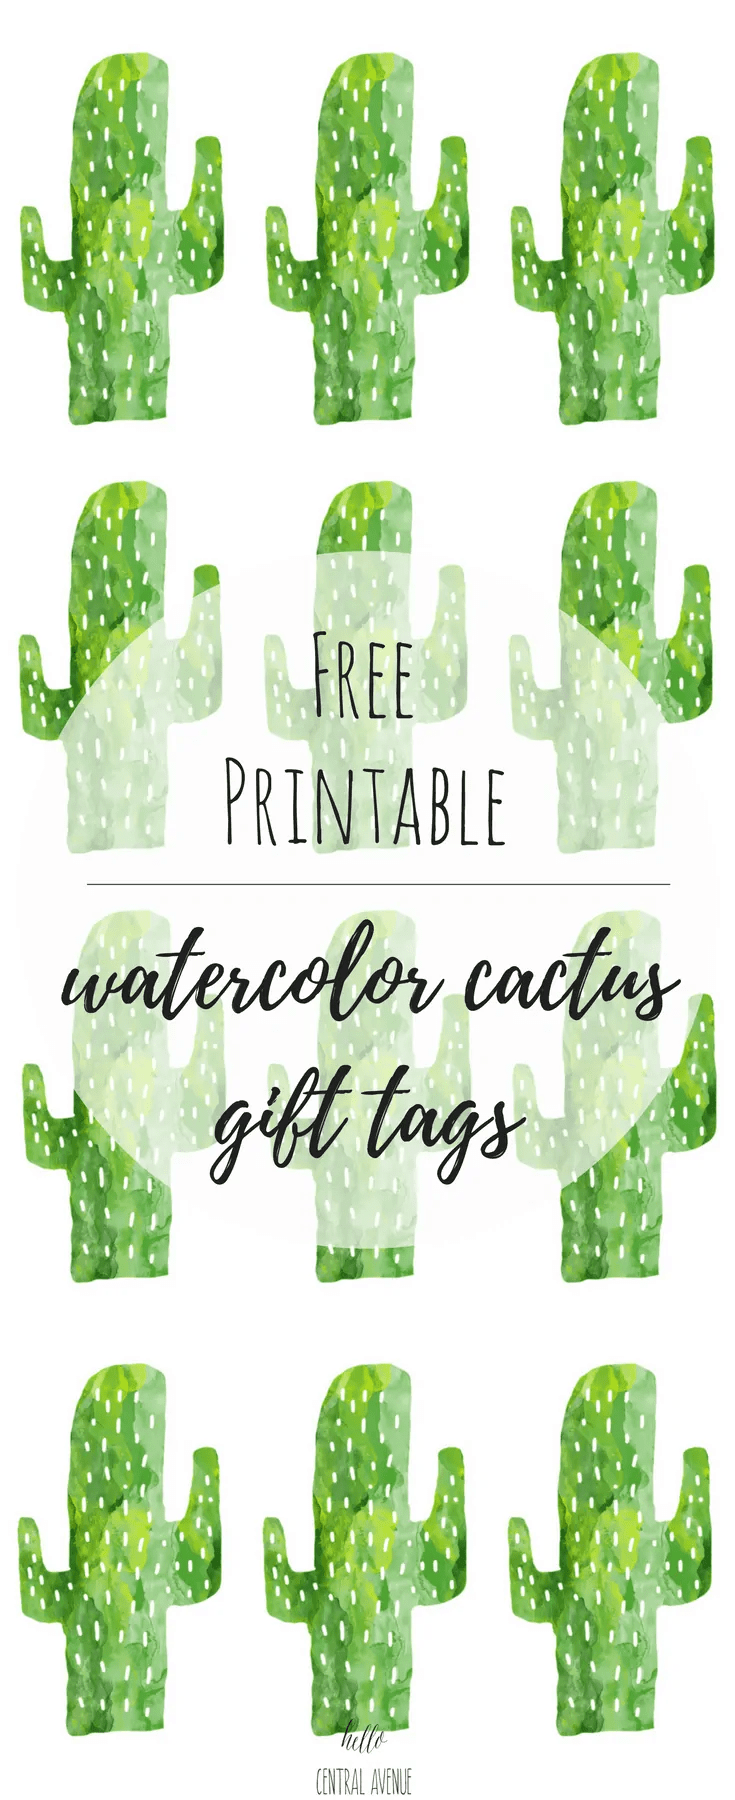 photograph about Free Printable Customizable Gift Tags called Absolutely free Printable Cactus Present Tags - Howdy Central Street